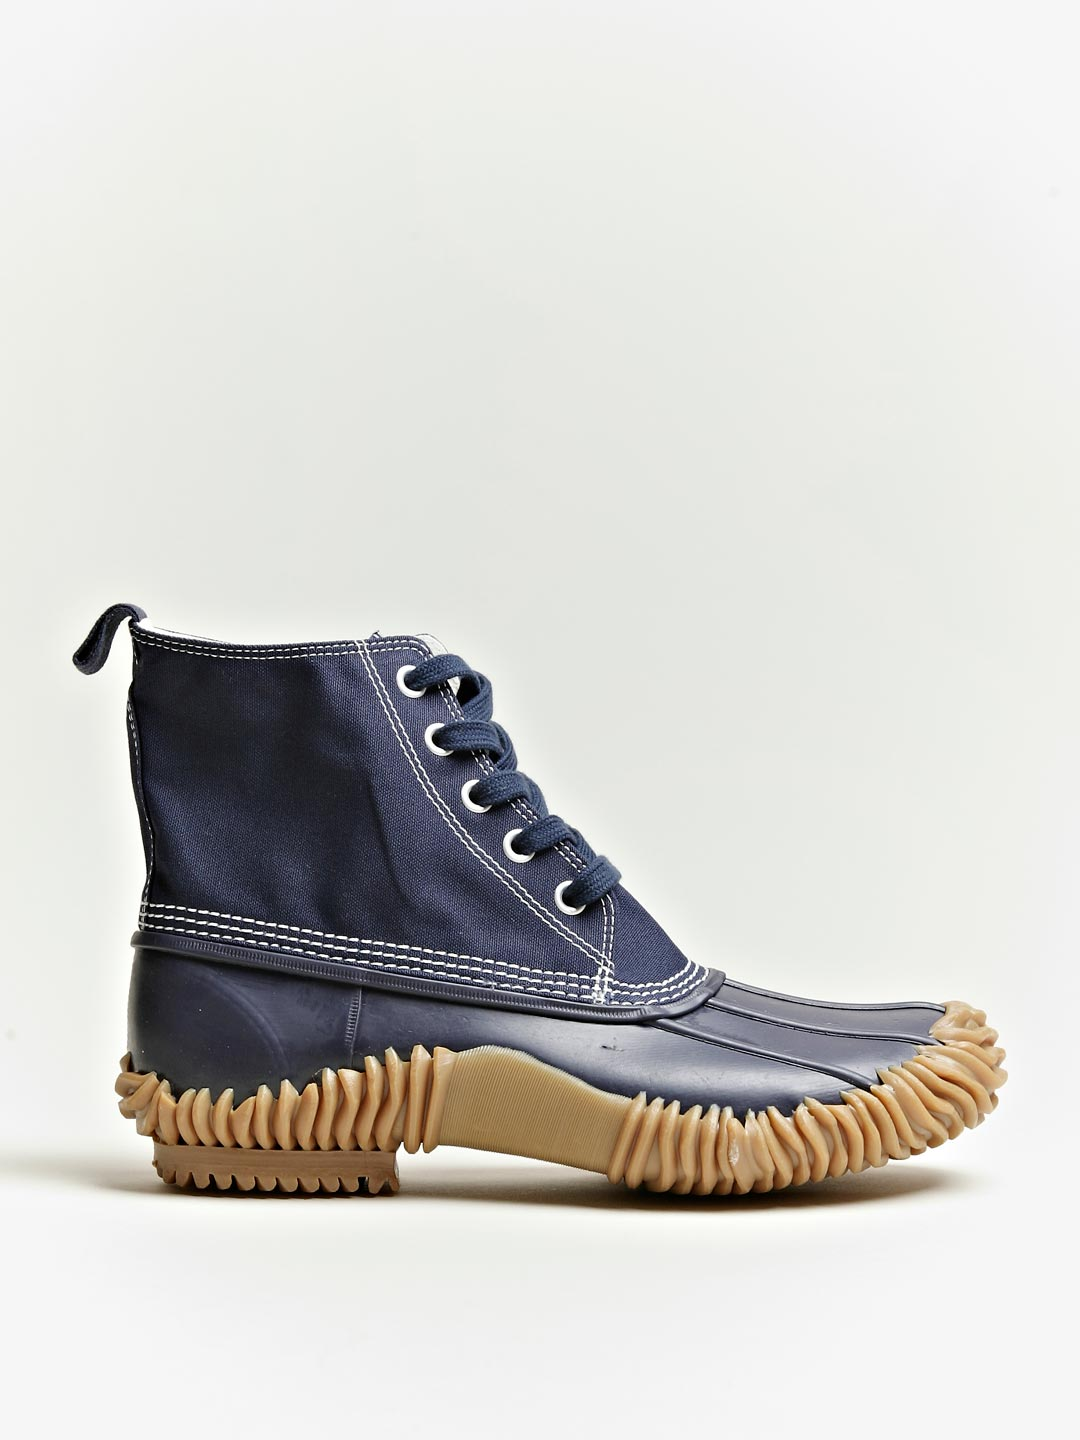 Lyst Junya Watanabe Duck Boots In Blue For Men